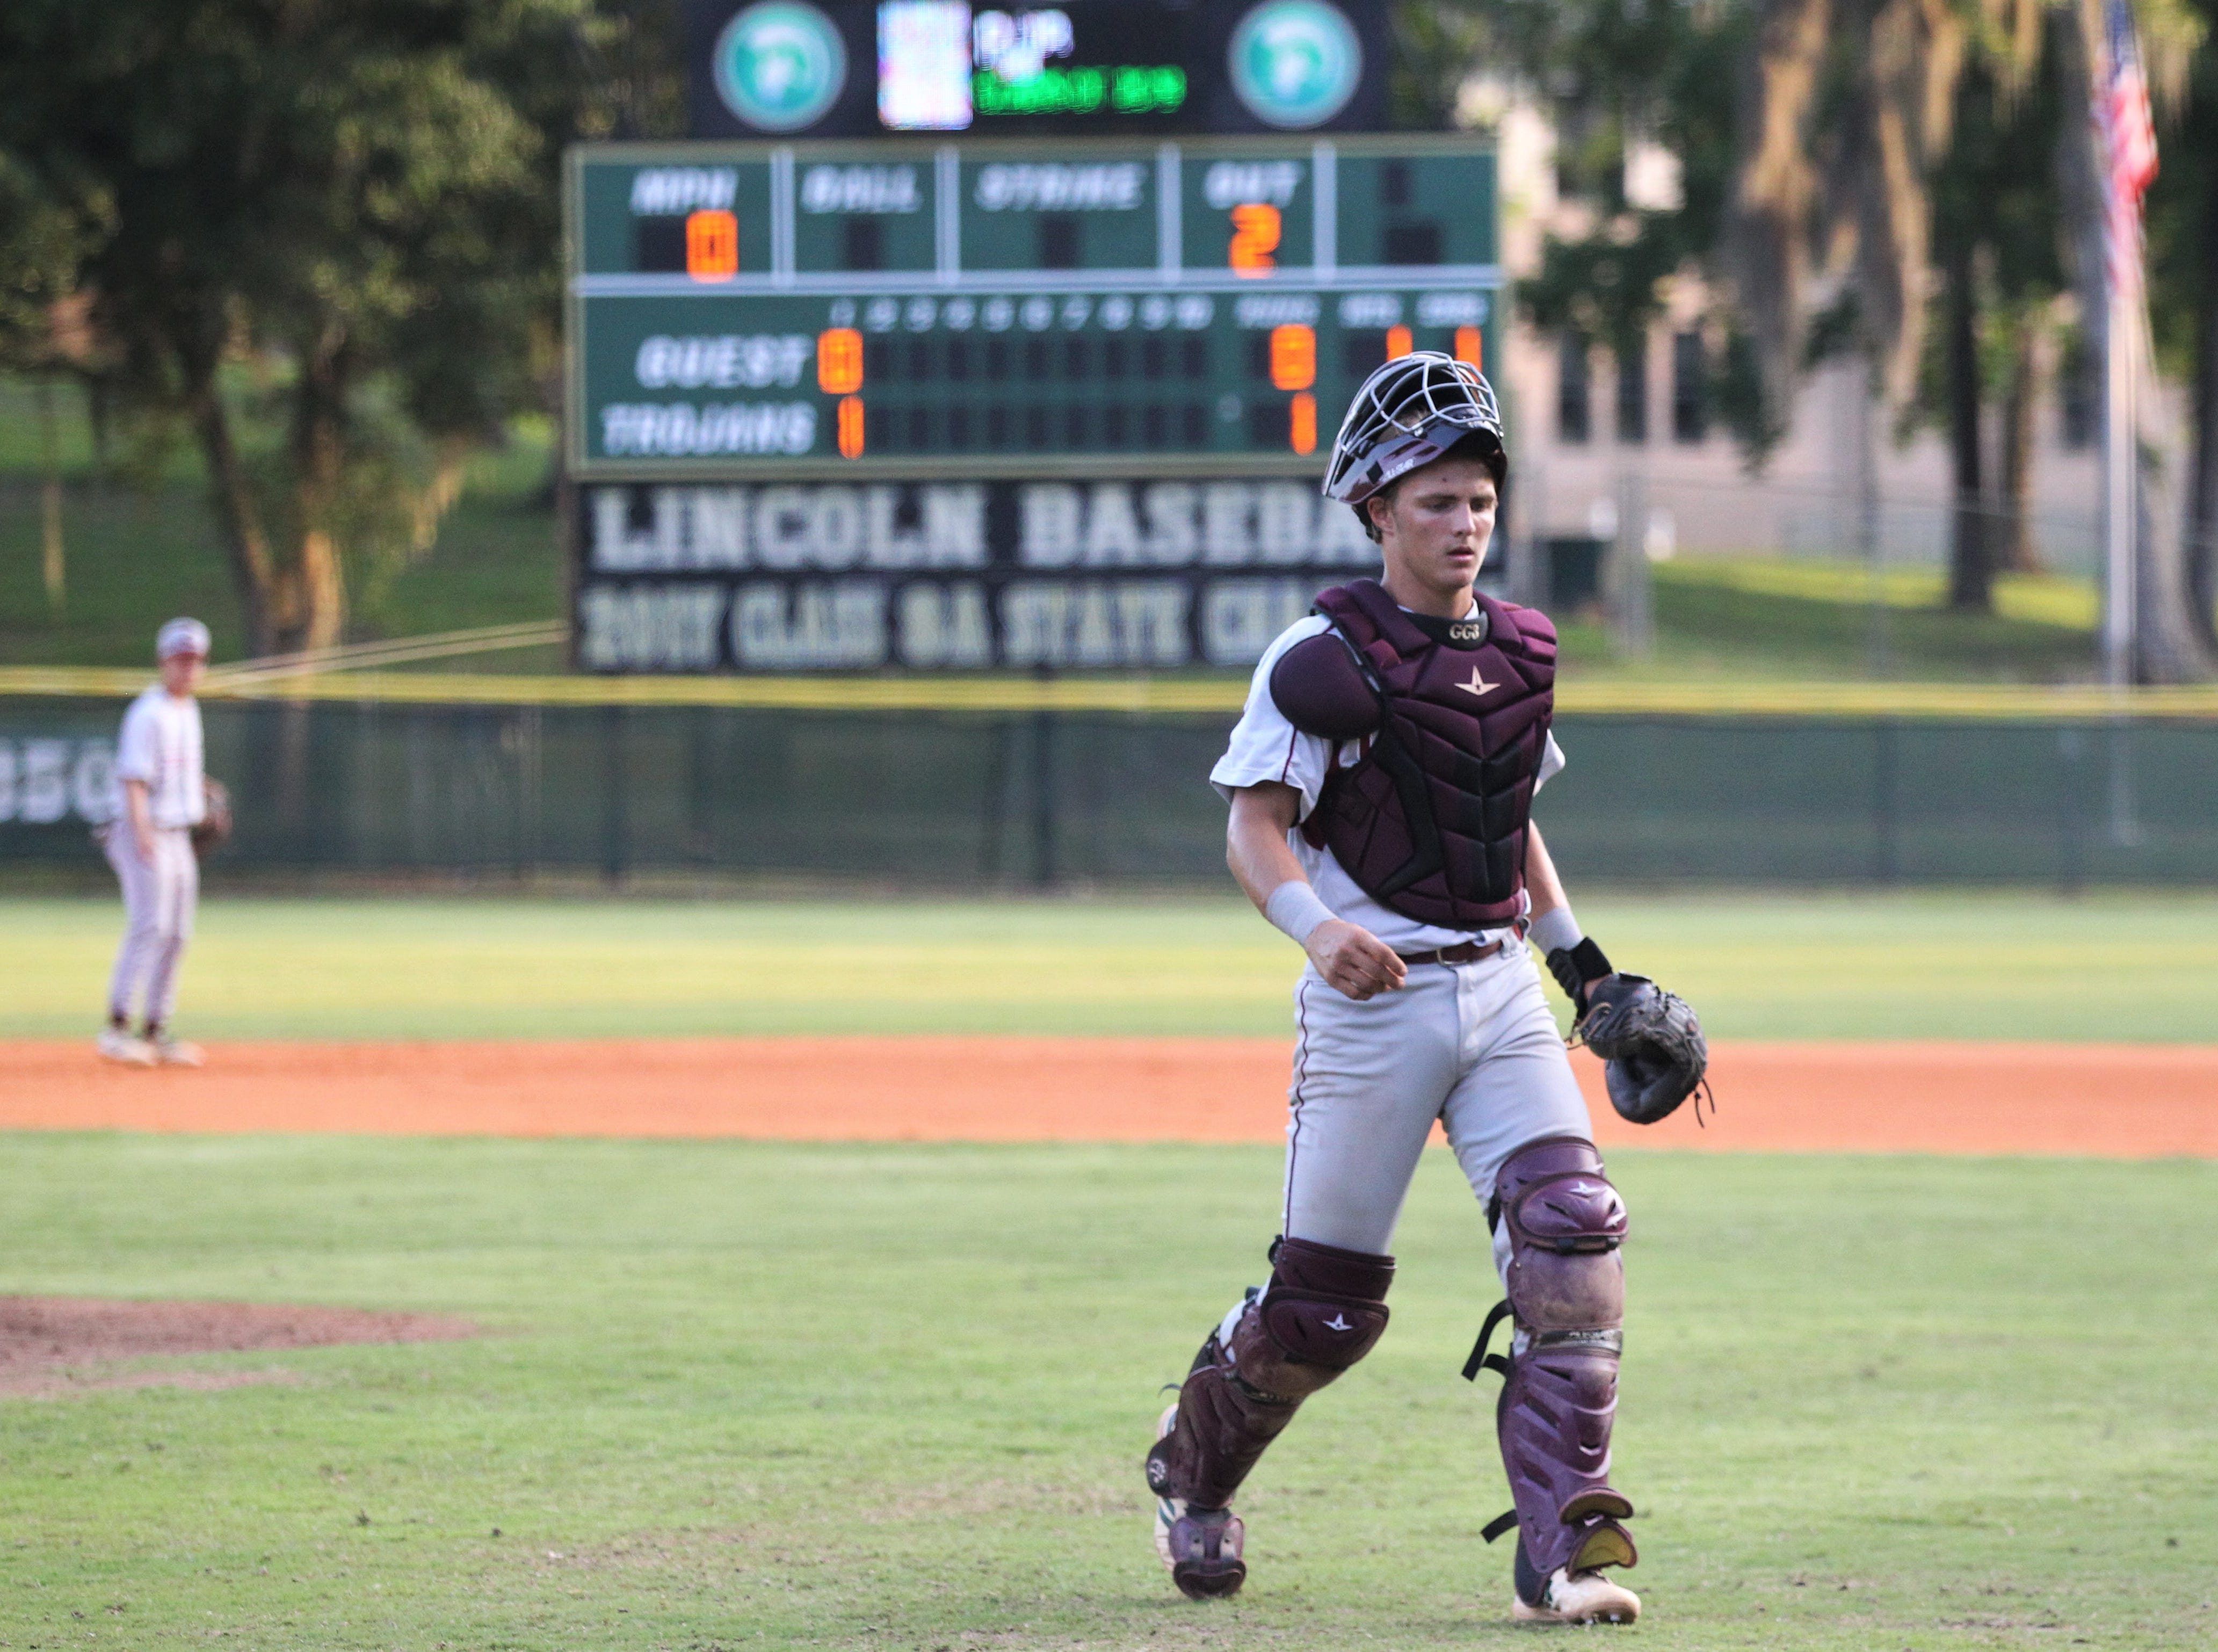 Chiles catcher Garrett Greene heads back to home plate after a discussion on the mound as Lincoln baseball beat Chiles 5-4  in 10 innings during a District 2-8A championship game on Thursday, May 9, 2019.